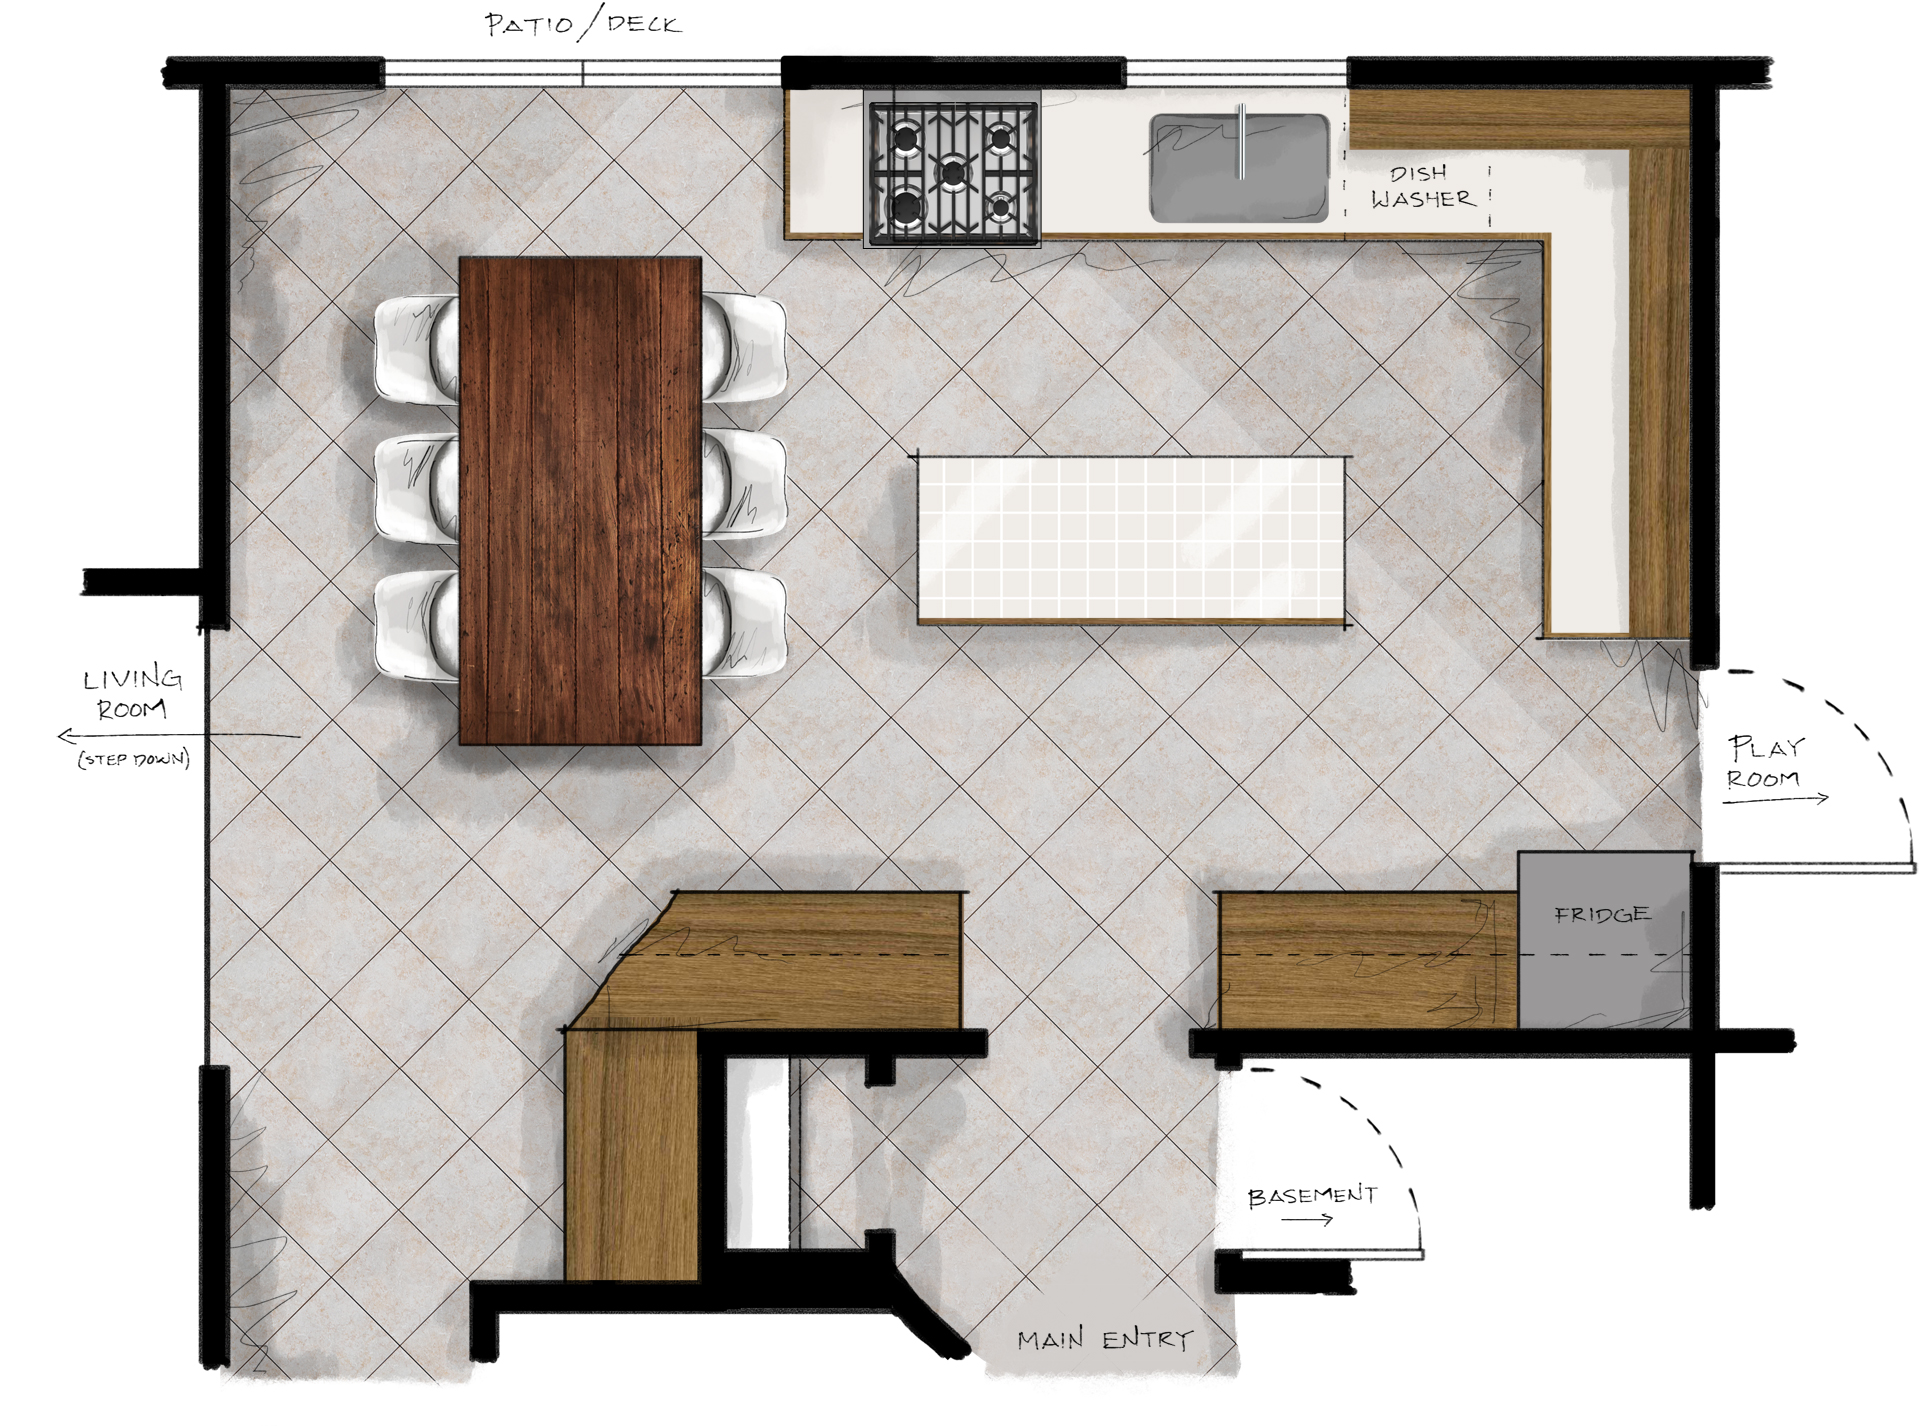 Kitchen Plans New Kitchen Plans Making Nice In The Midwest